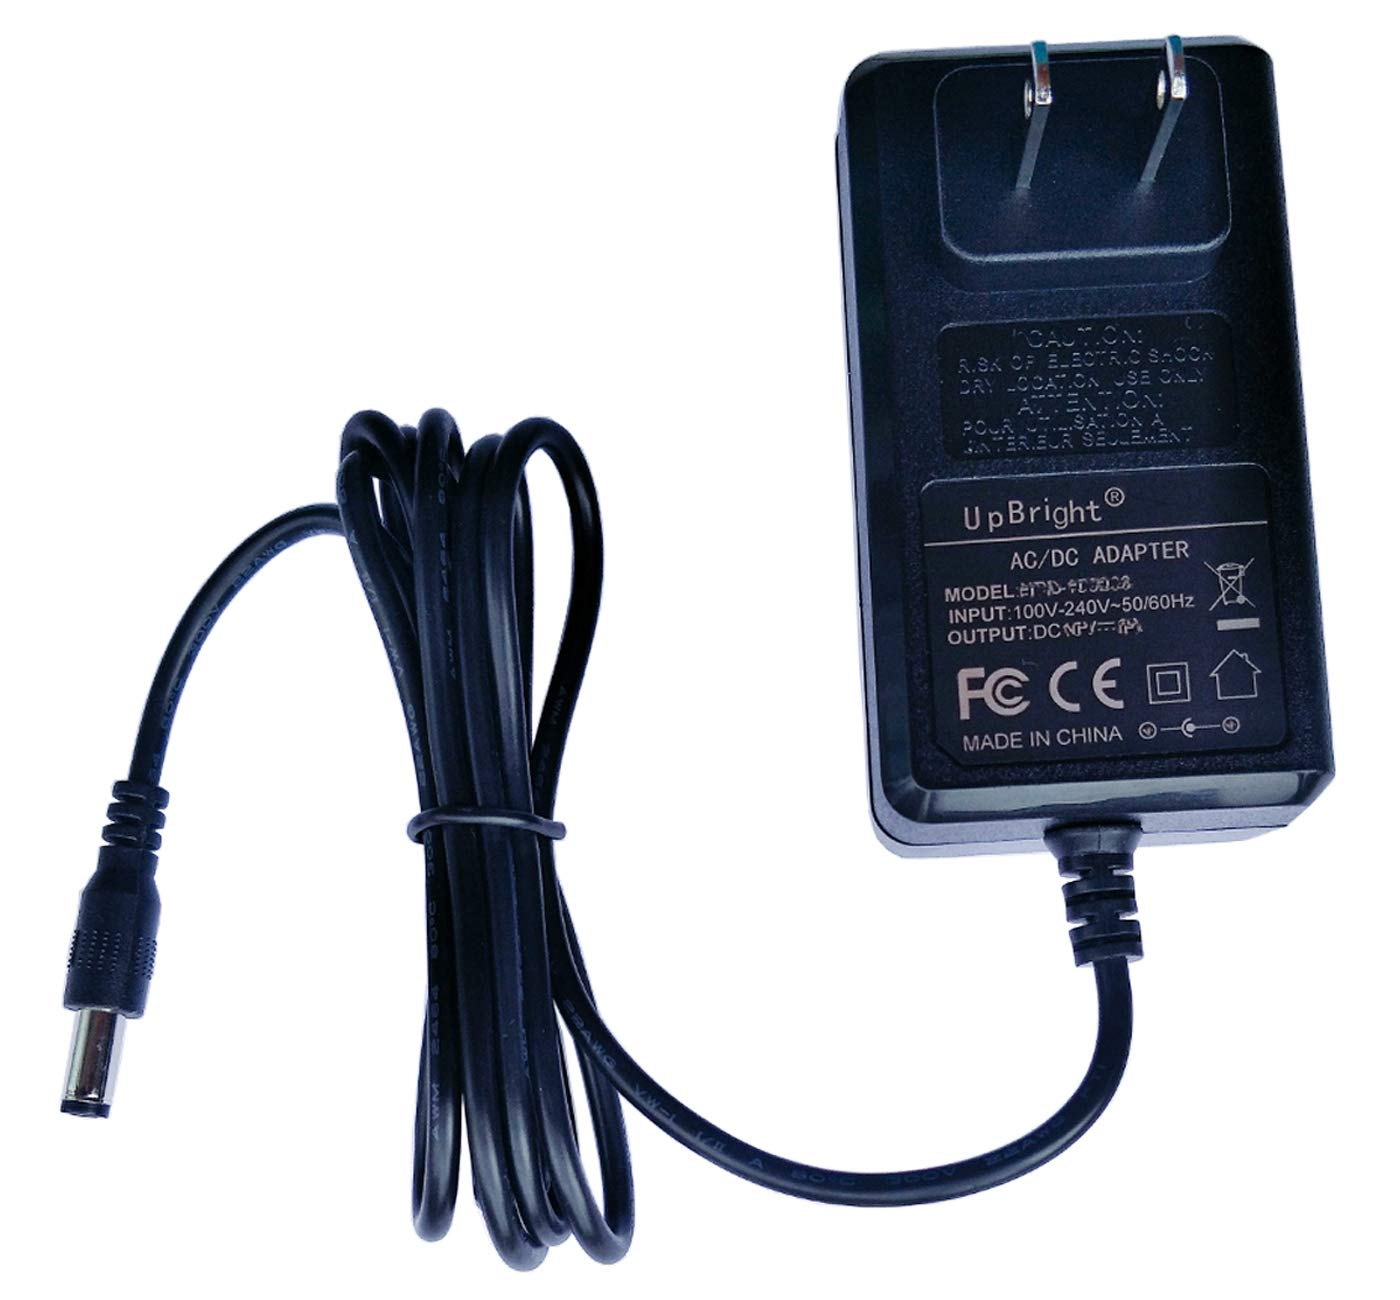 UpBright AC/DC Adapter Compatible with Shark DK33-248080H-U Rocket Pet Pro IZ162H 26 IZ162H26 IX140 IX141 IZ140 IZ142 UZ145 IZ140C IZ141C IZ162HC XBCHGX140 XSBT620 Stick Vacuum Cleaner Power Charger